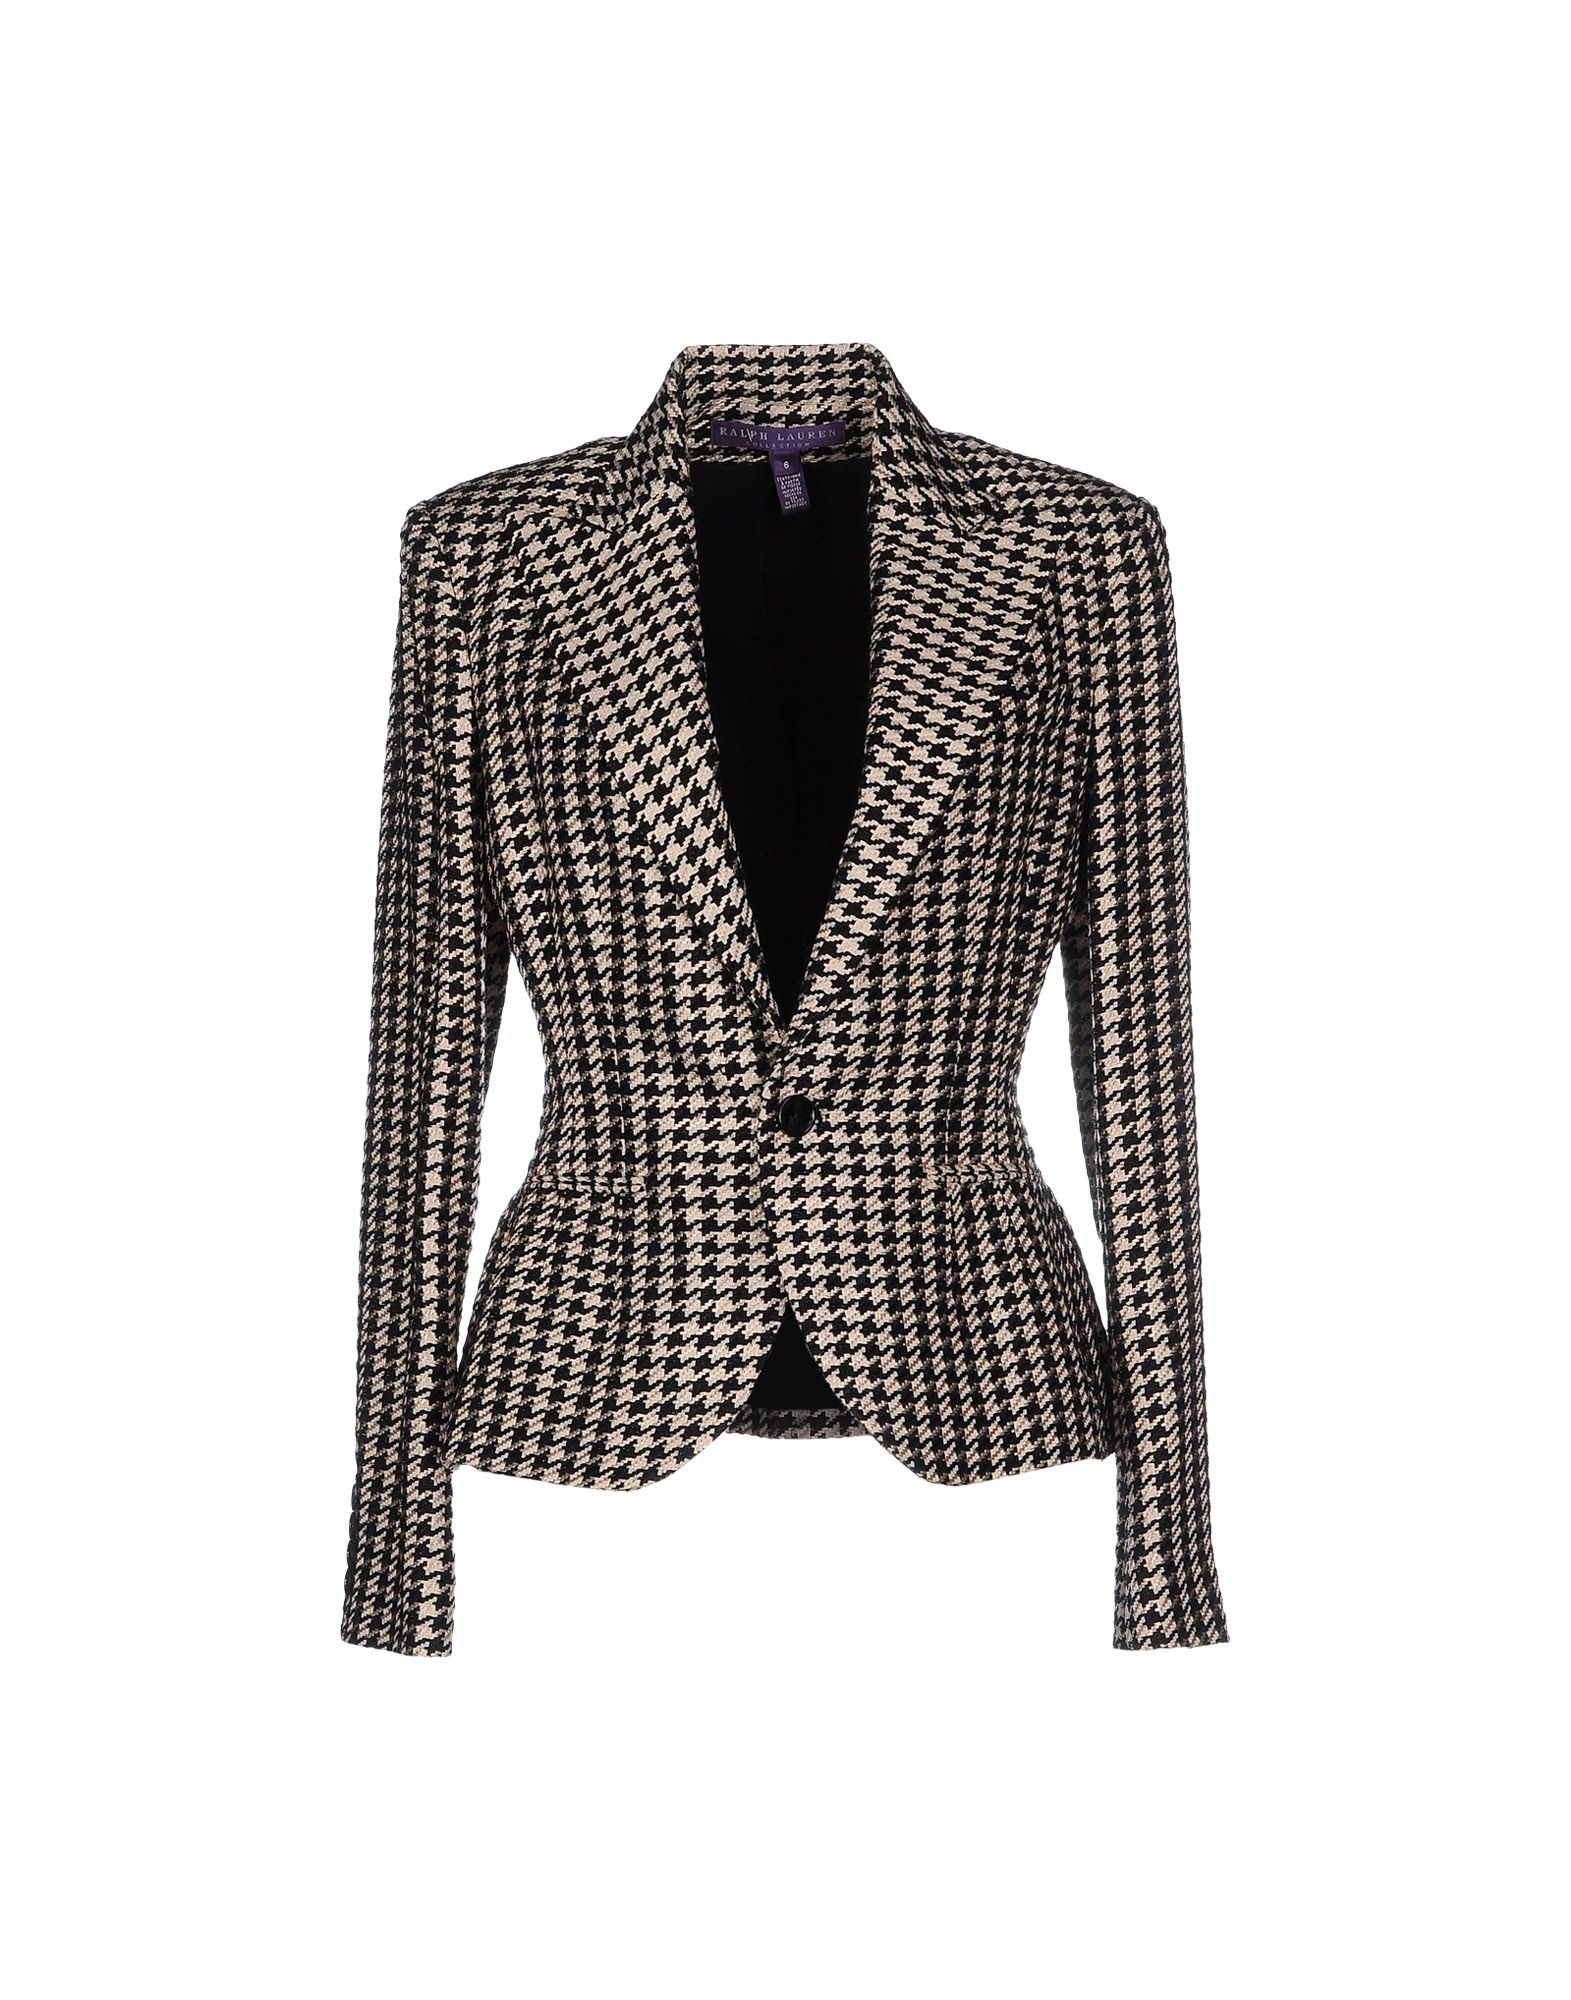 lyst ralph lauren collection lucinda houndstooth jacket in black. Black Bedroom Furniture Sets. Home Design Ideas